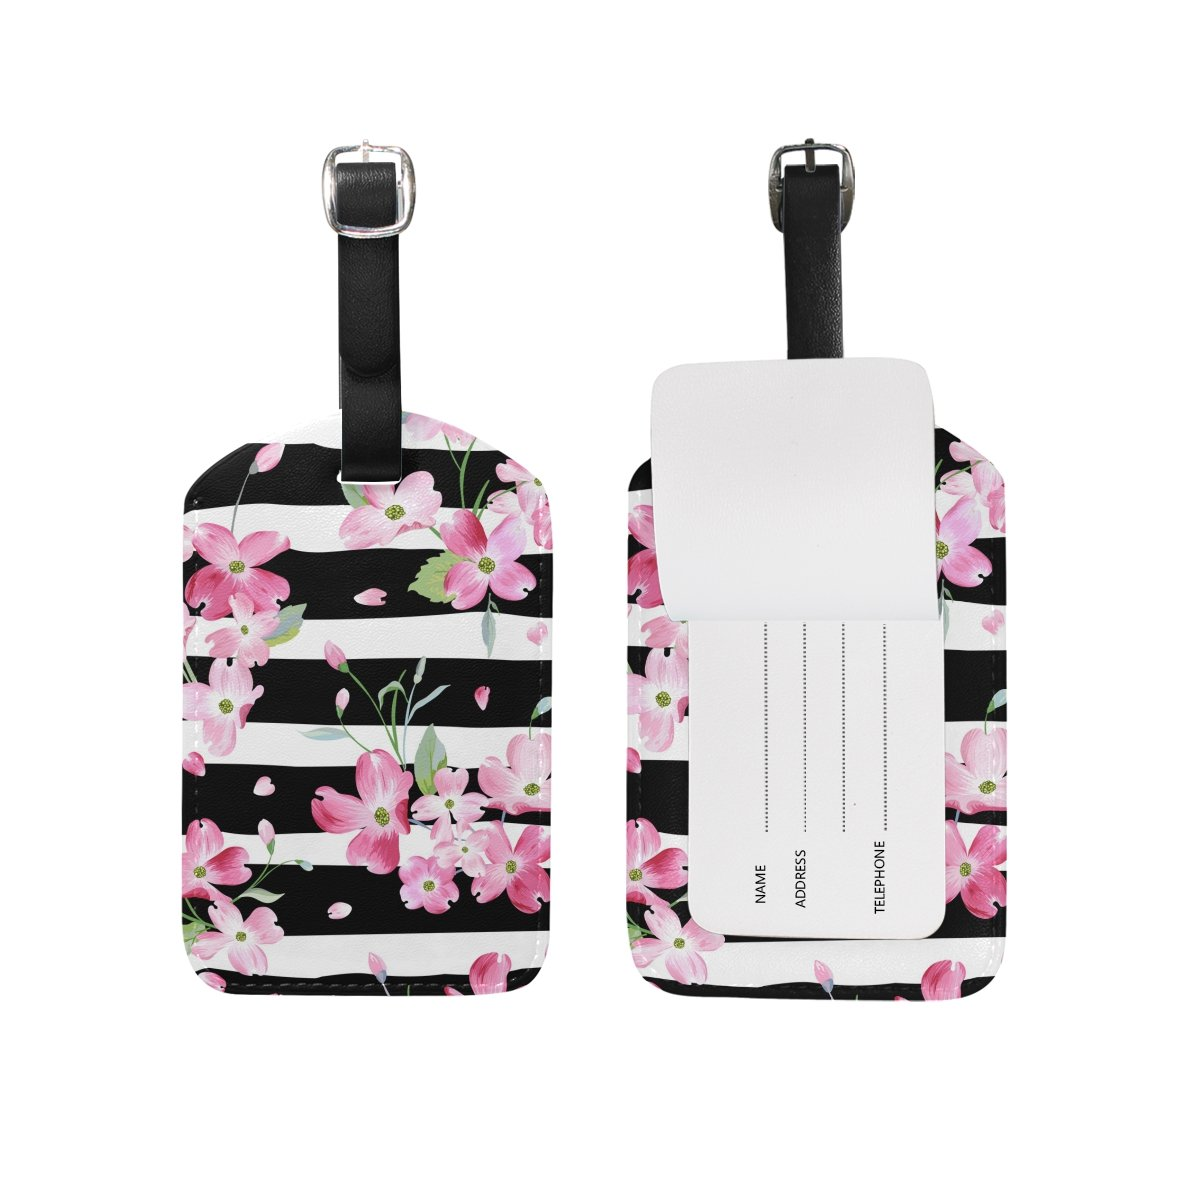 U LIFE Spring Summer Floral Flowers Striped Luggage Tag Travel Baggage Tags by ALAZA